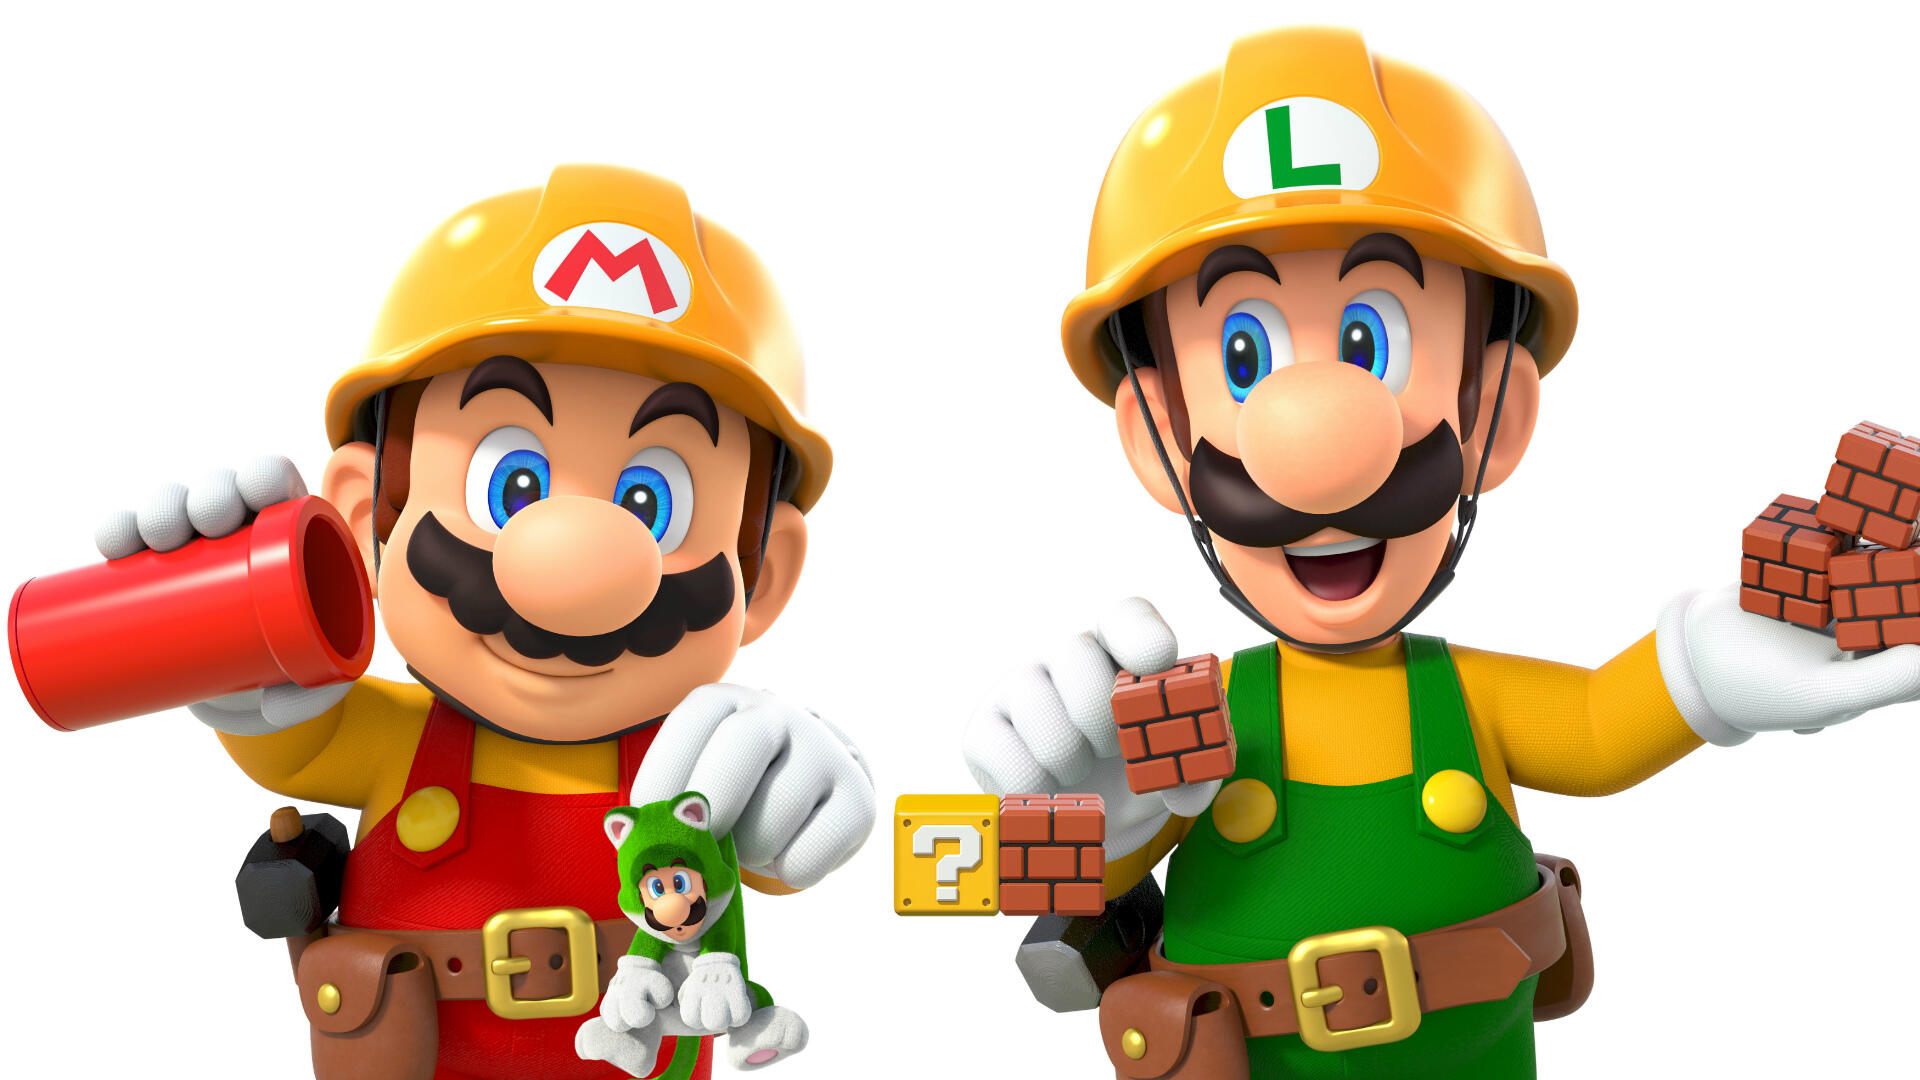 What Non-Mario Level Maker Game Would You Like to See Happen?